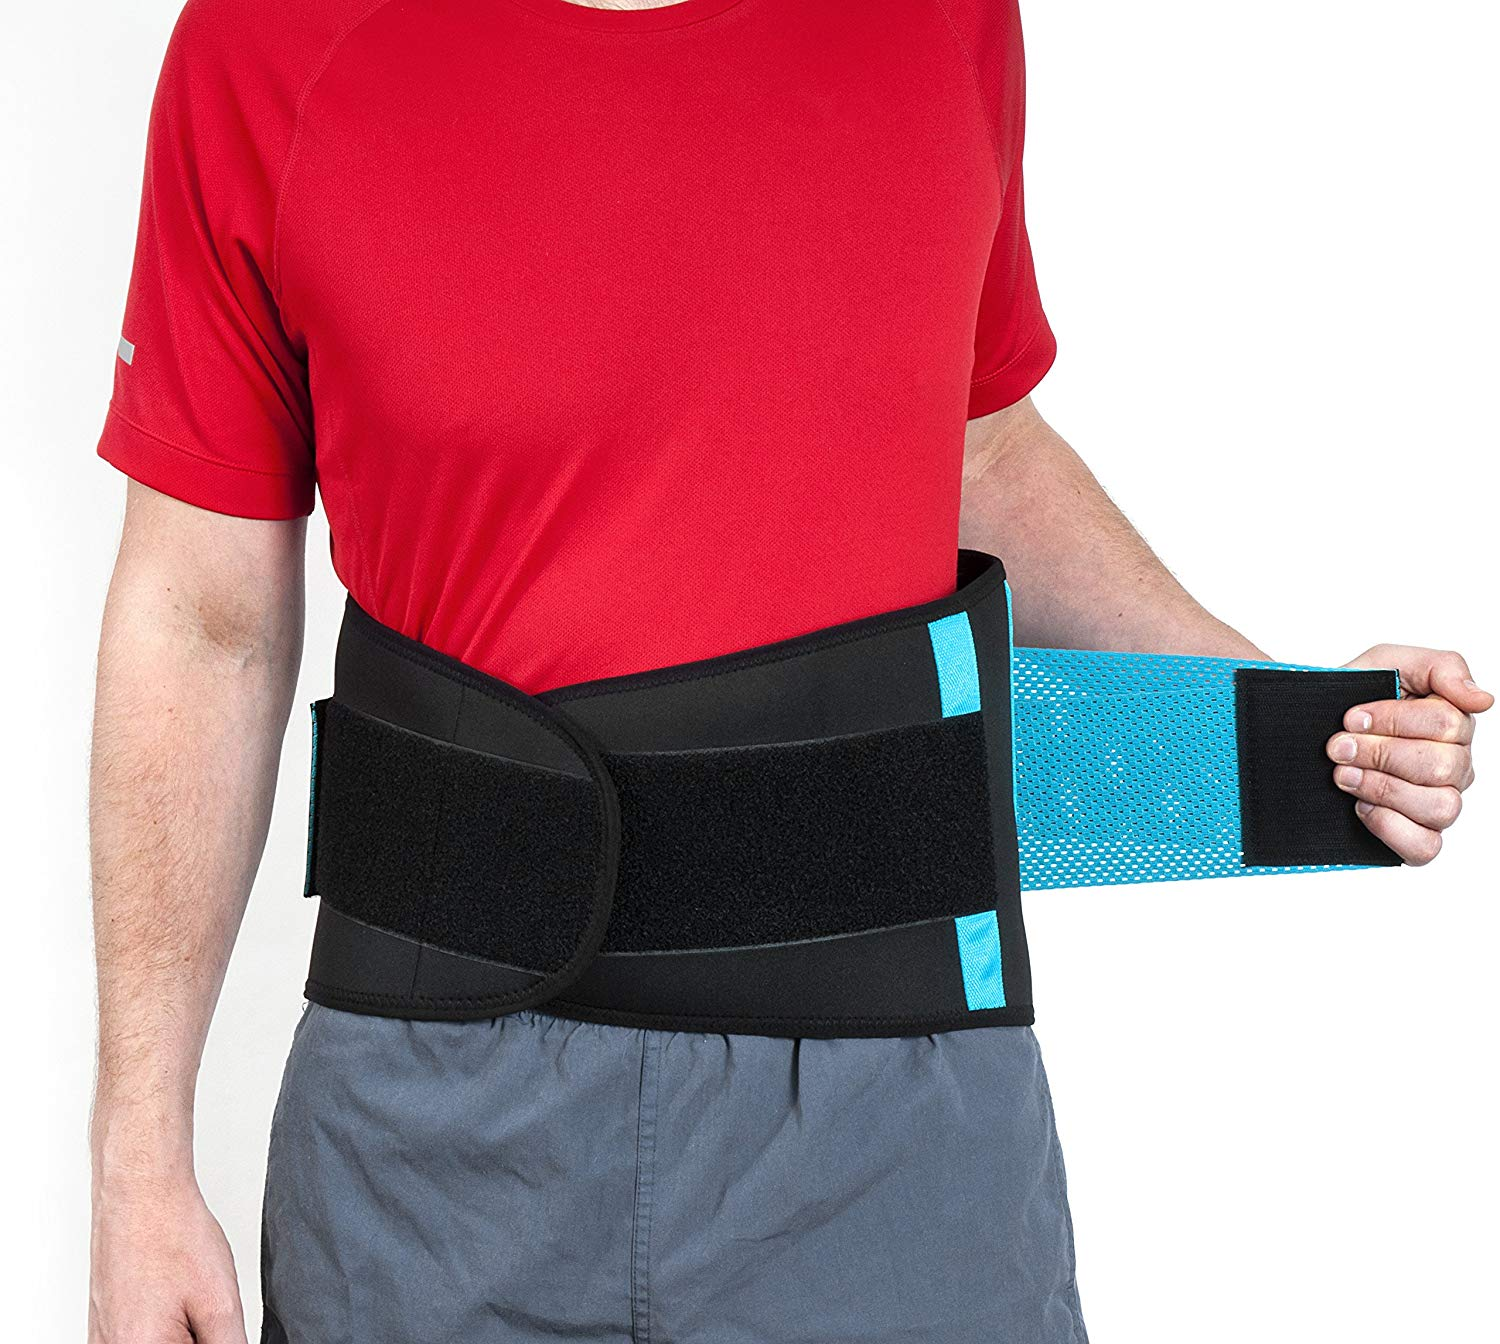 lower back belt support